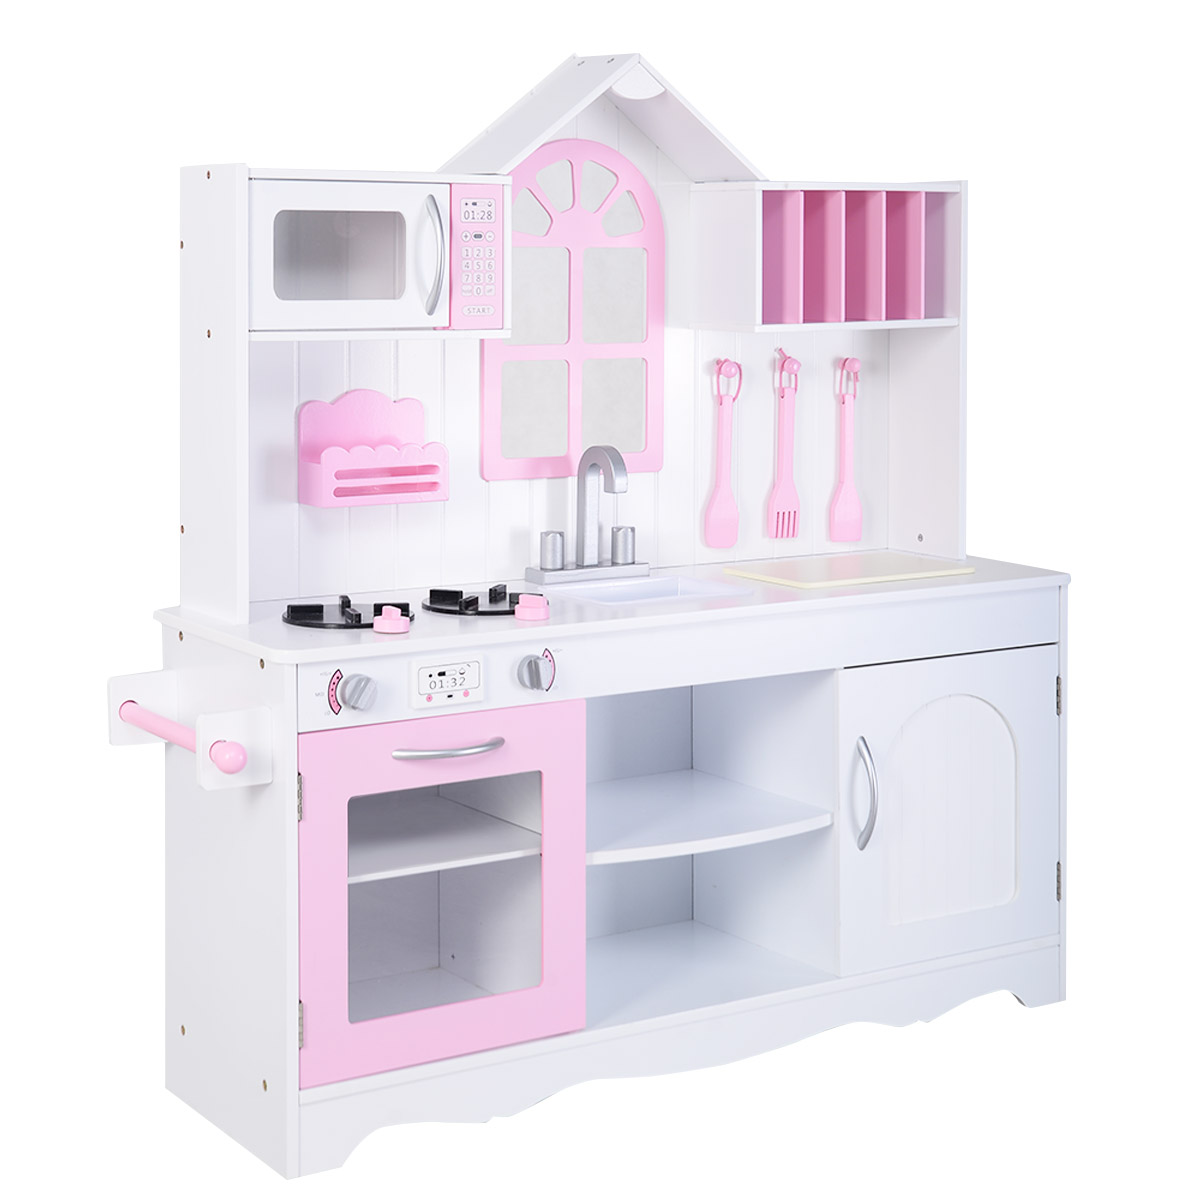 Costway Kids Wood Kitchen Toy Cooking Pretend Play Set Toddler Wooden Playset